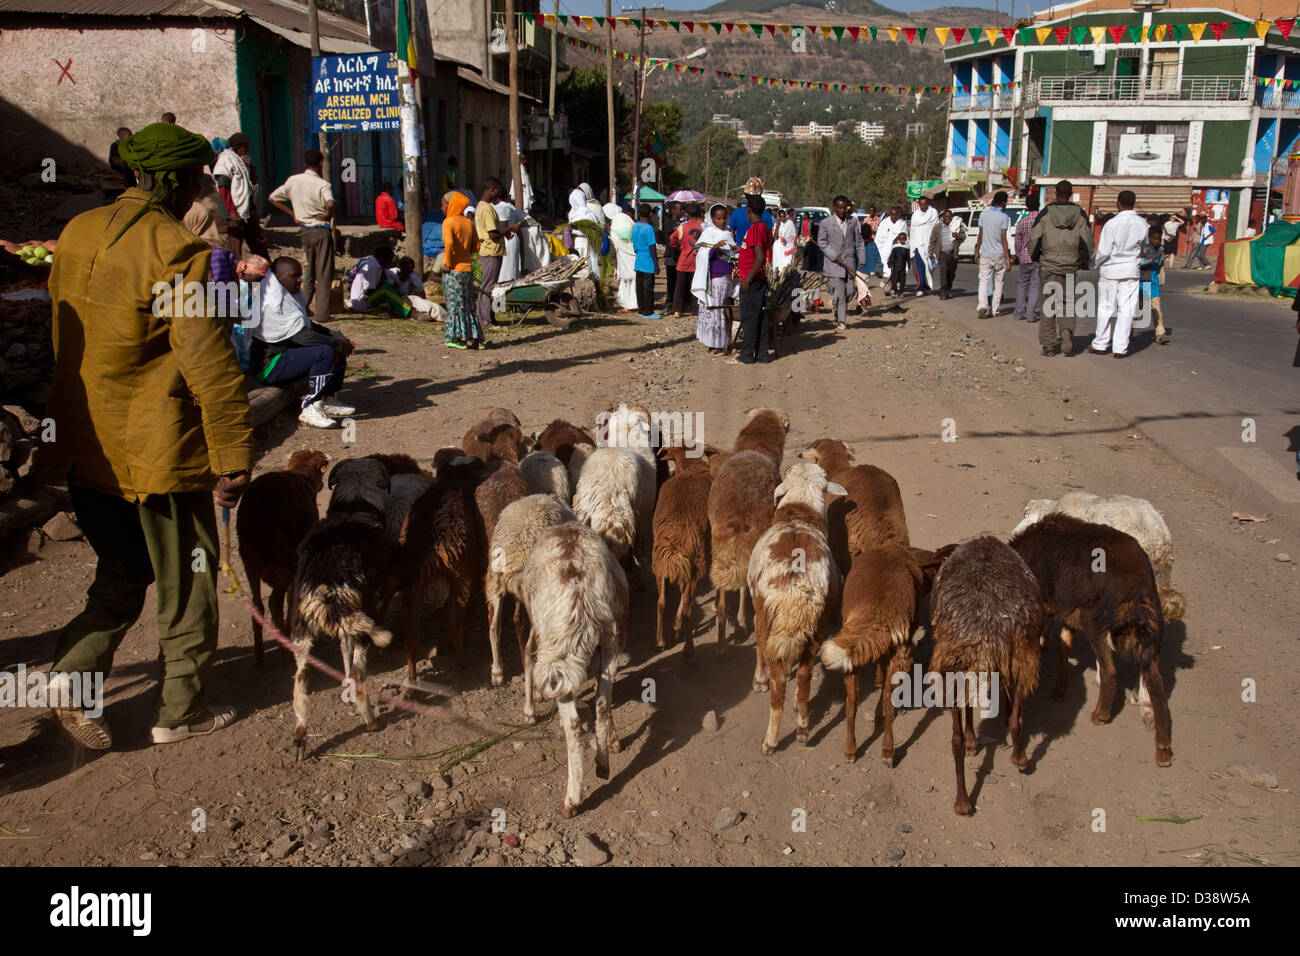 A farmer brings his sheep to the market in Gondar, Ethiopia - Stock Image